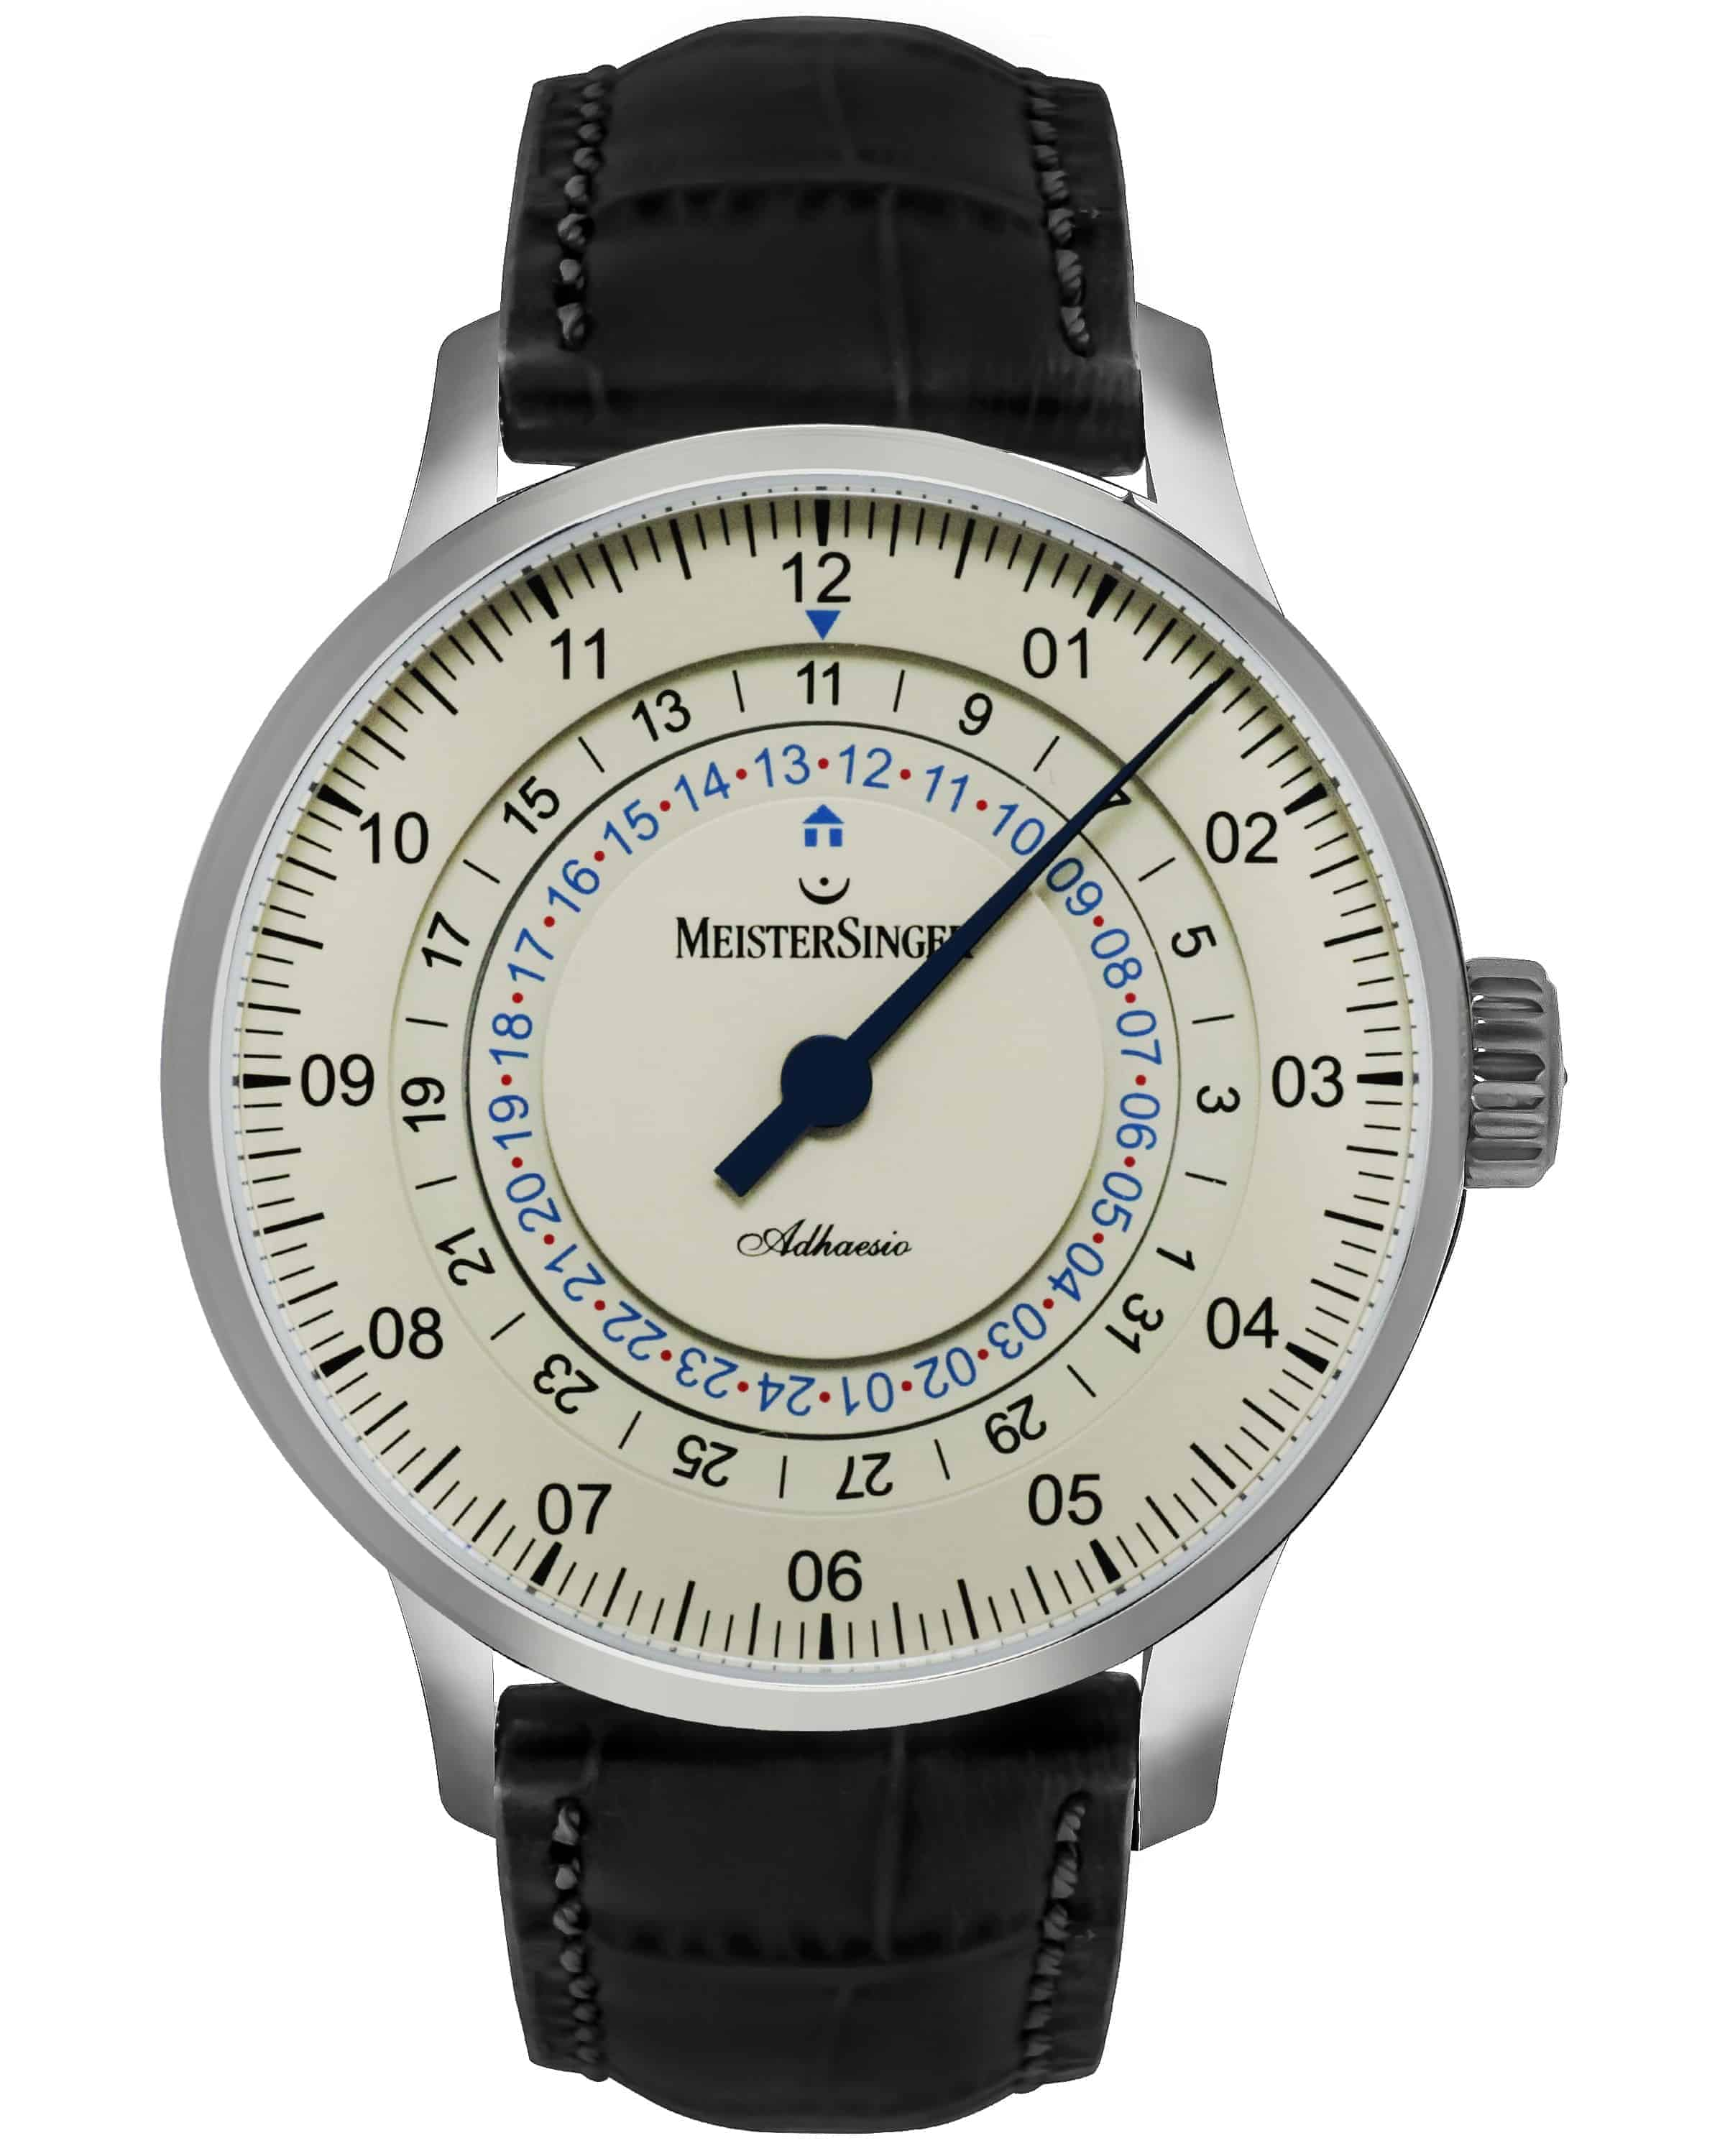 MeisterSinger Adhaesio Dual Time Black Strap Automatic Men's Watch AD903C